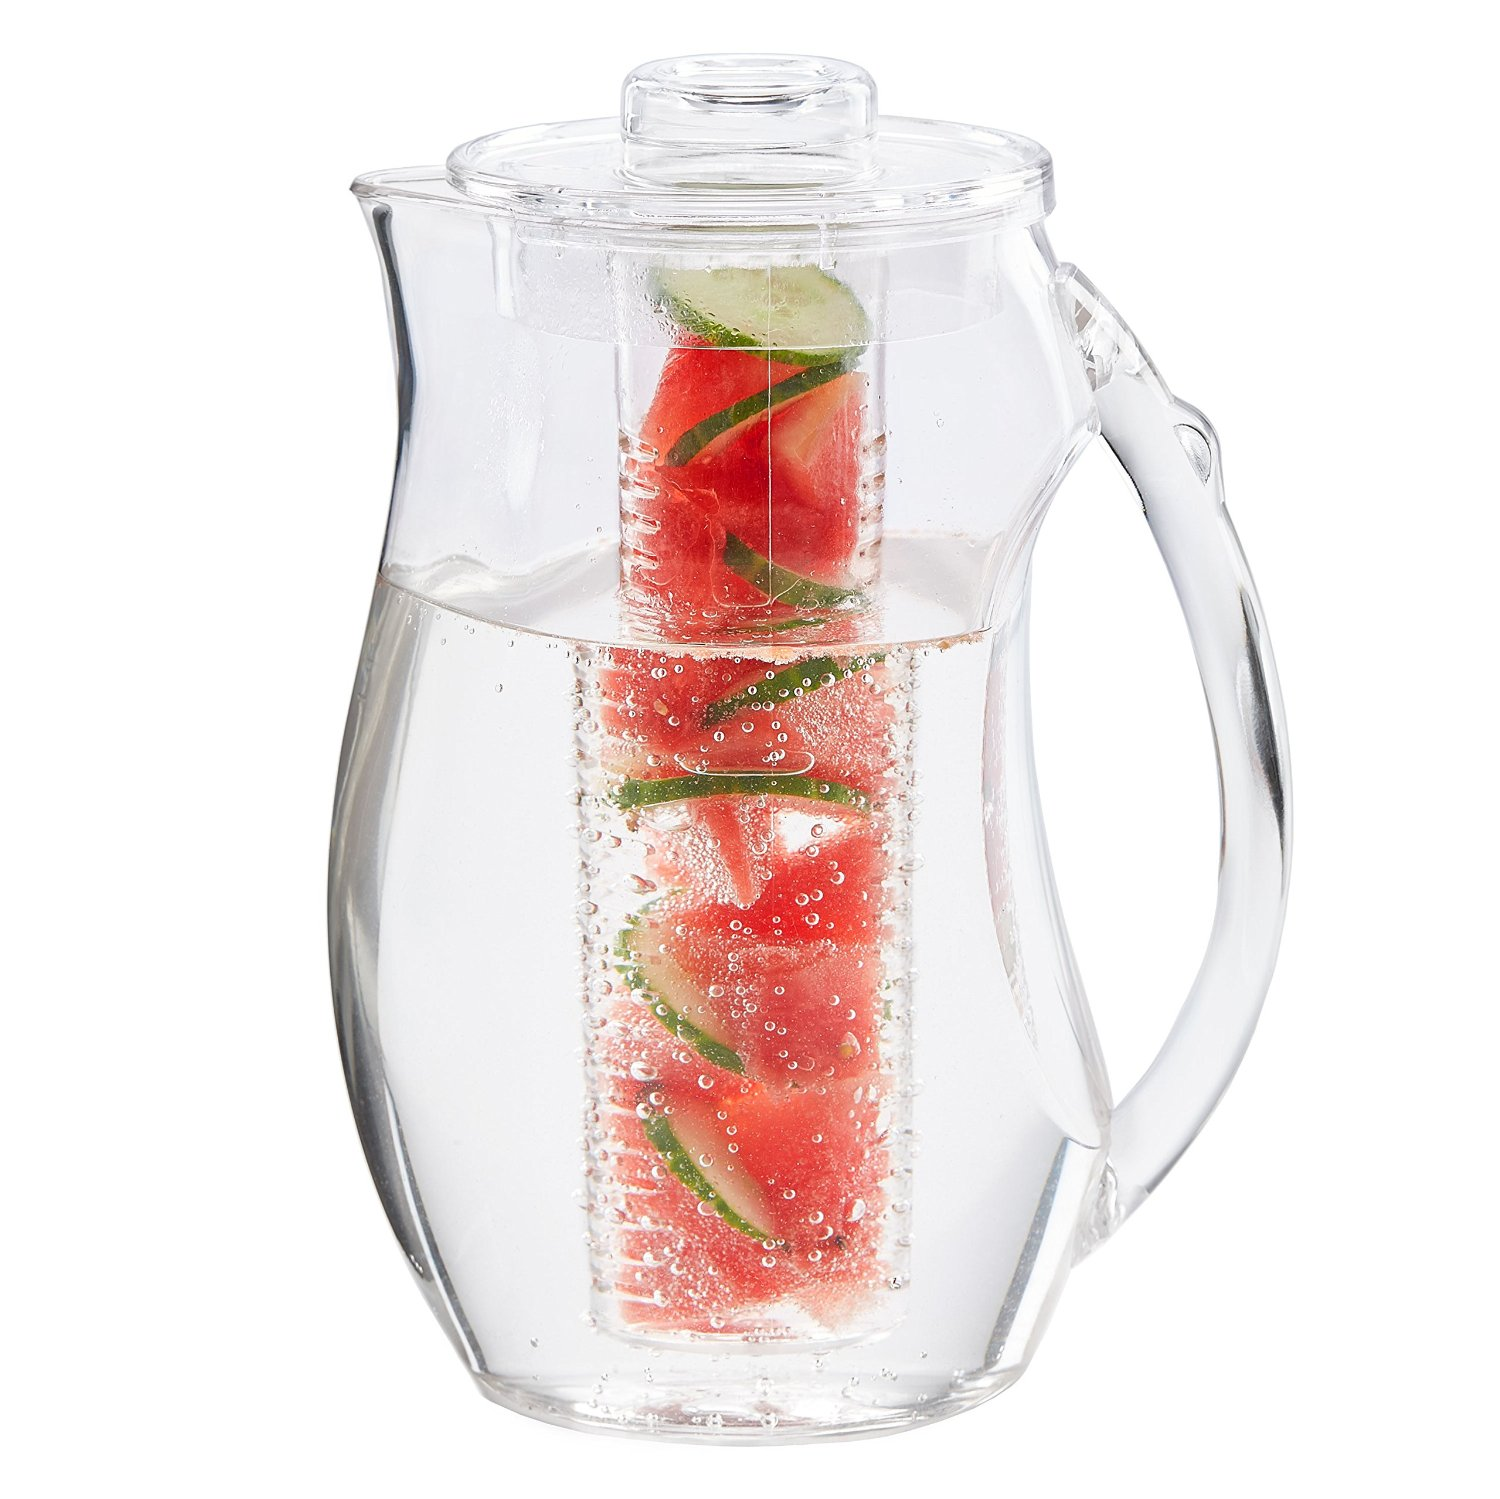 UK Fruit Infused Water Bottle and Pitcher Reviews